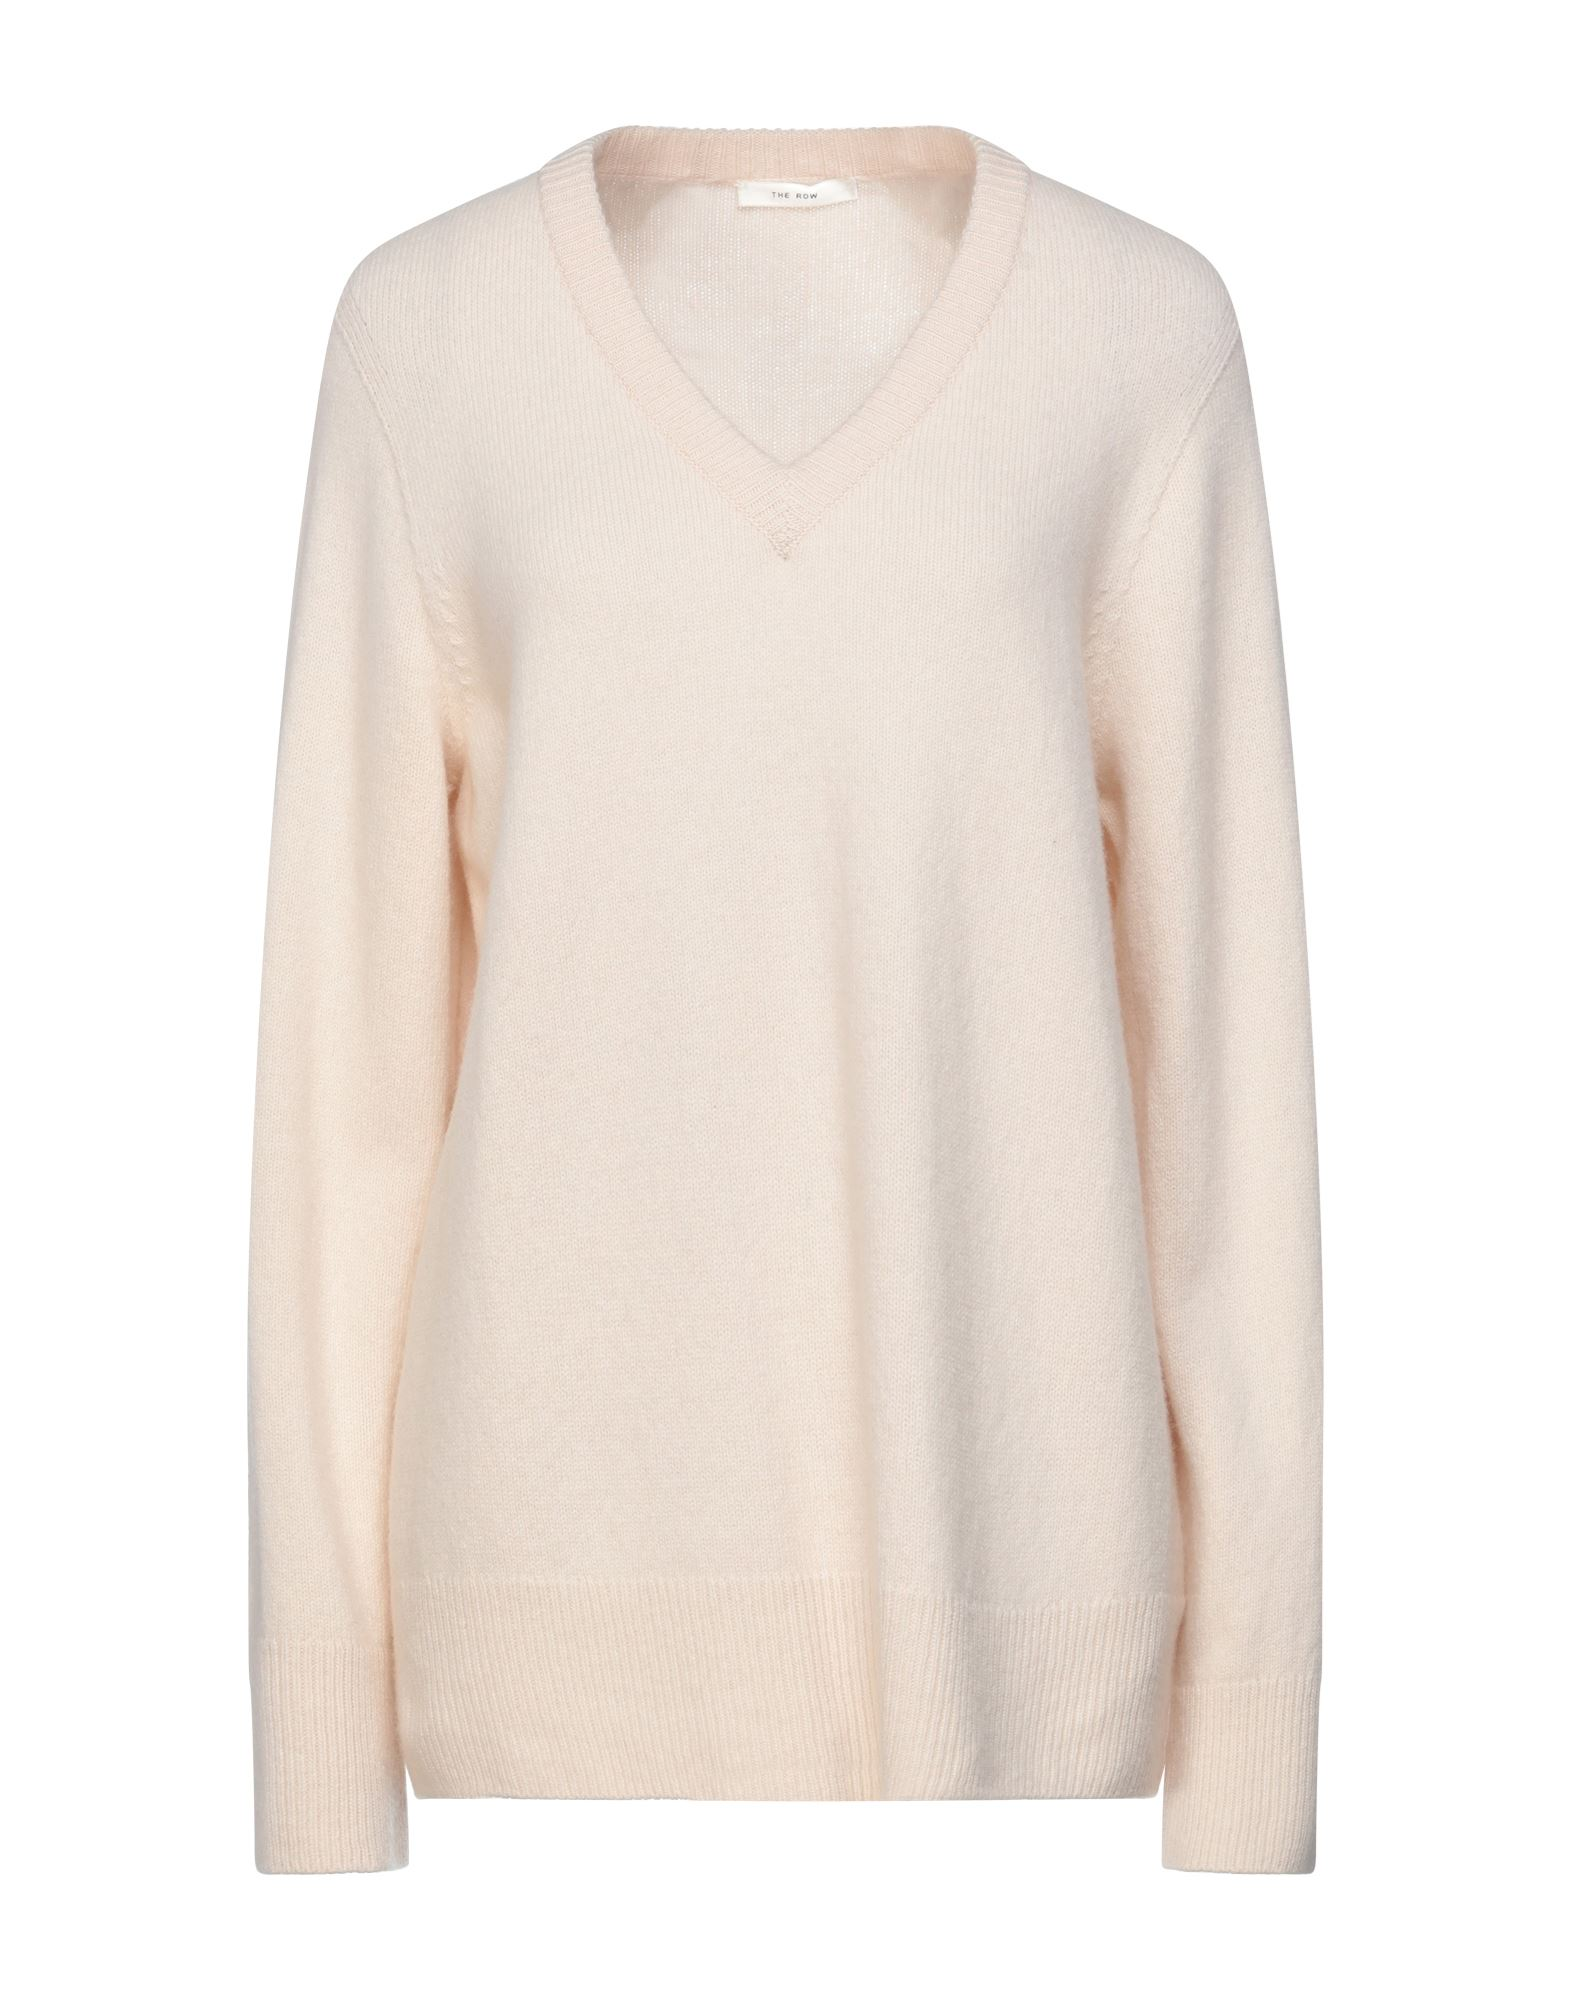 THE ROW Sweaters - Item 14123083